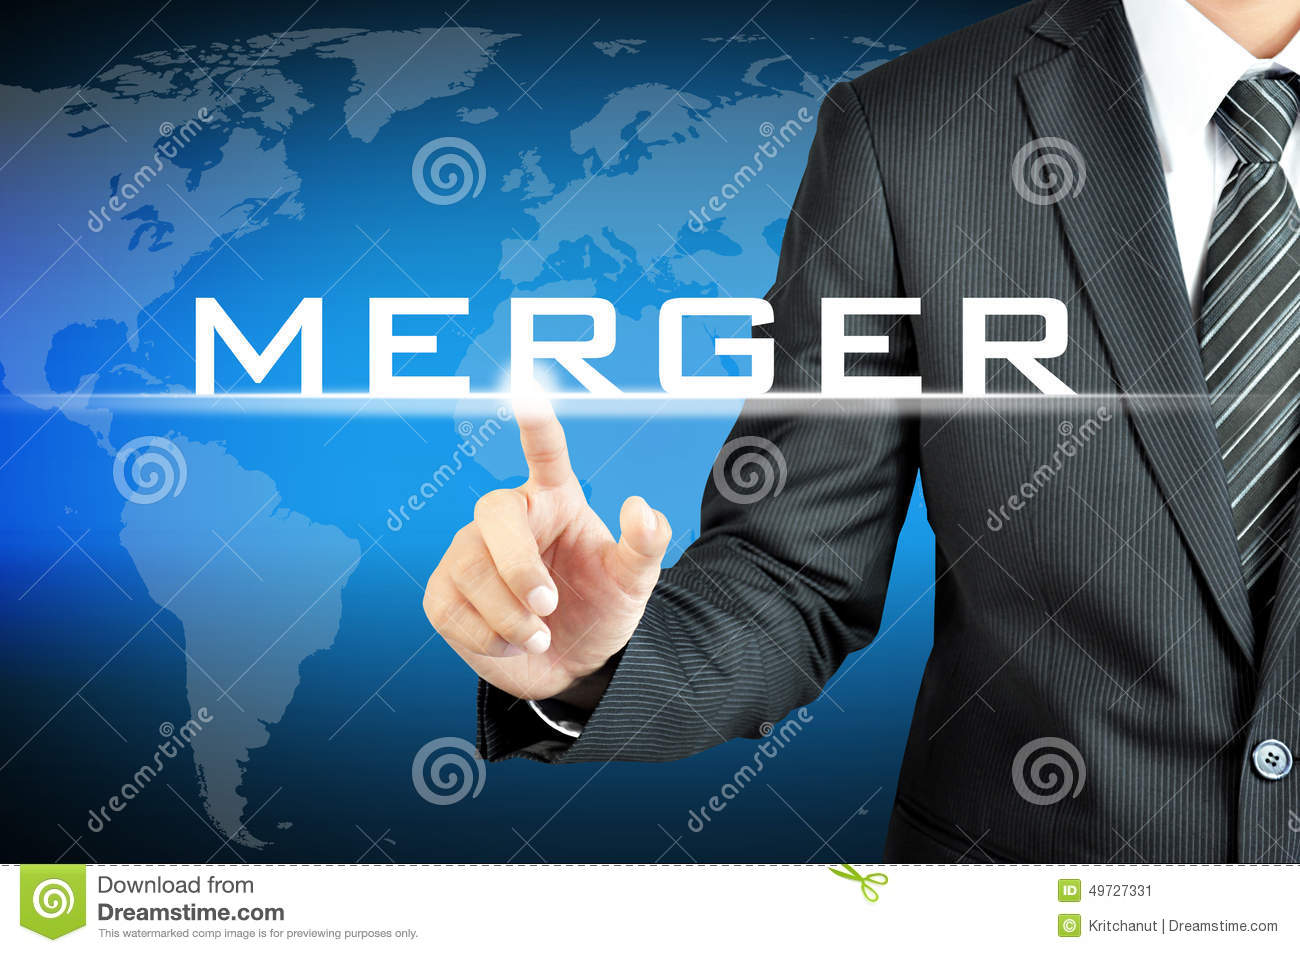 Businessman hand pointing to MERGER sign